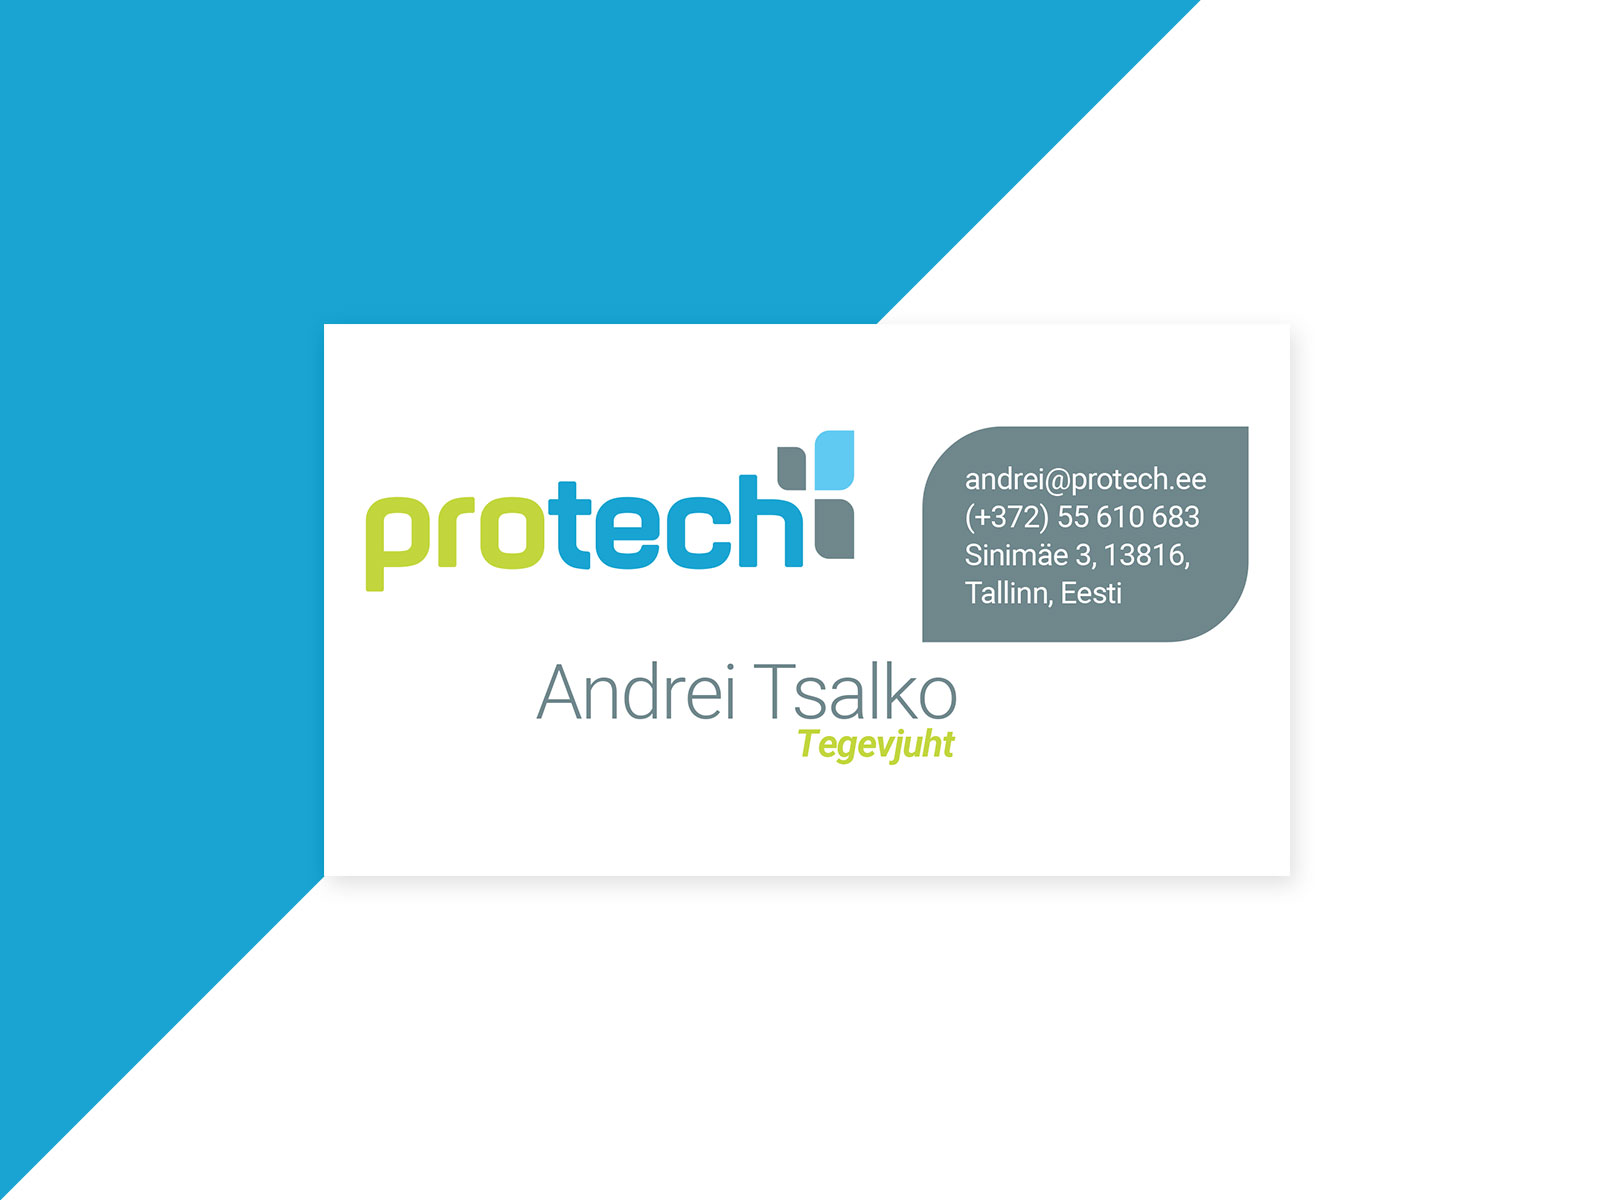 protech business card